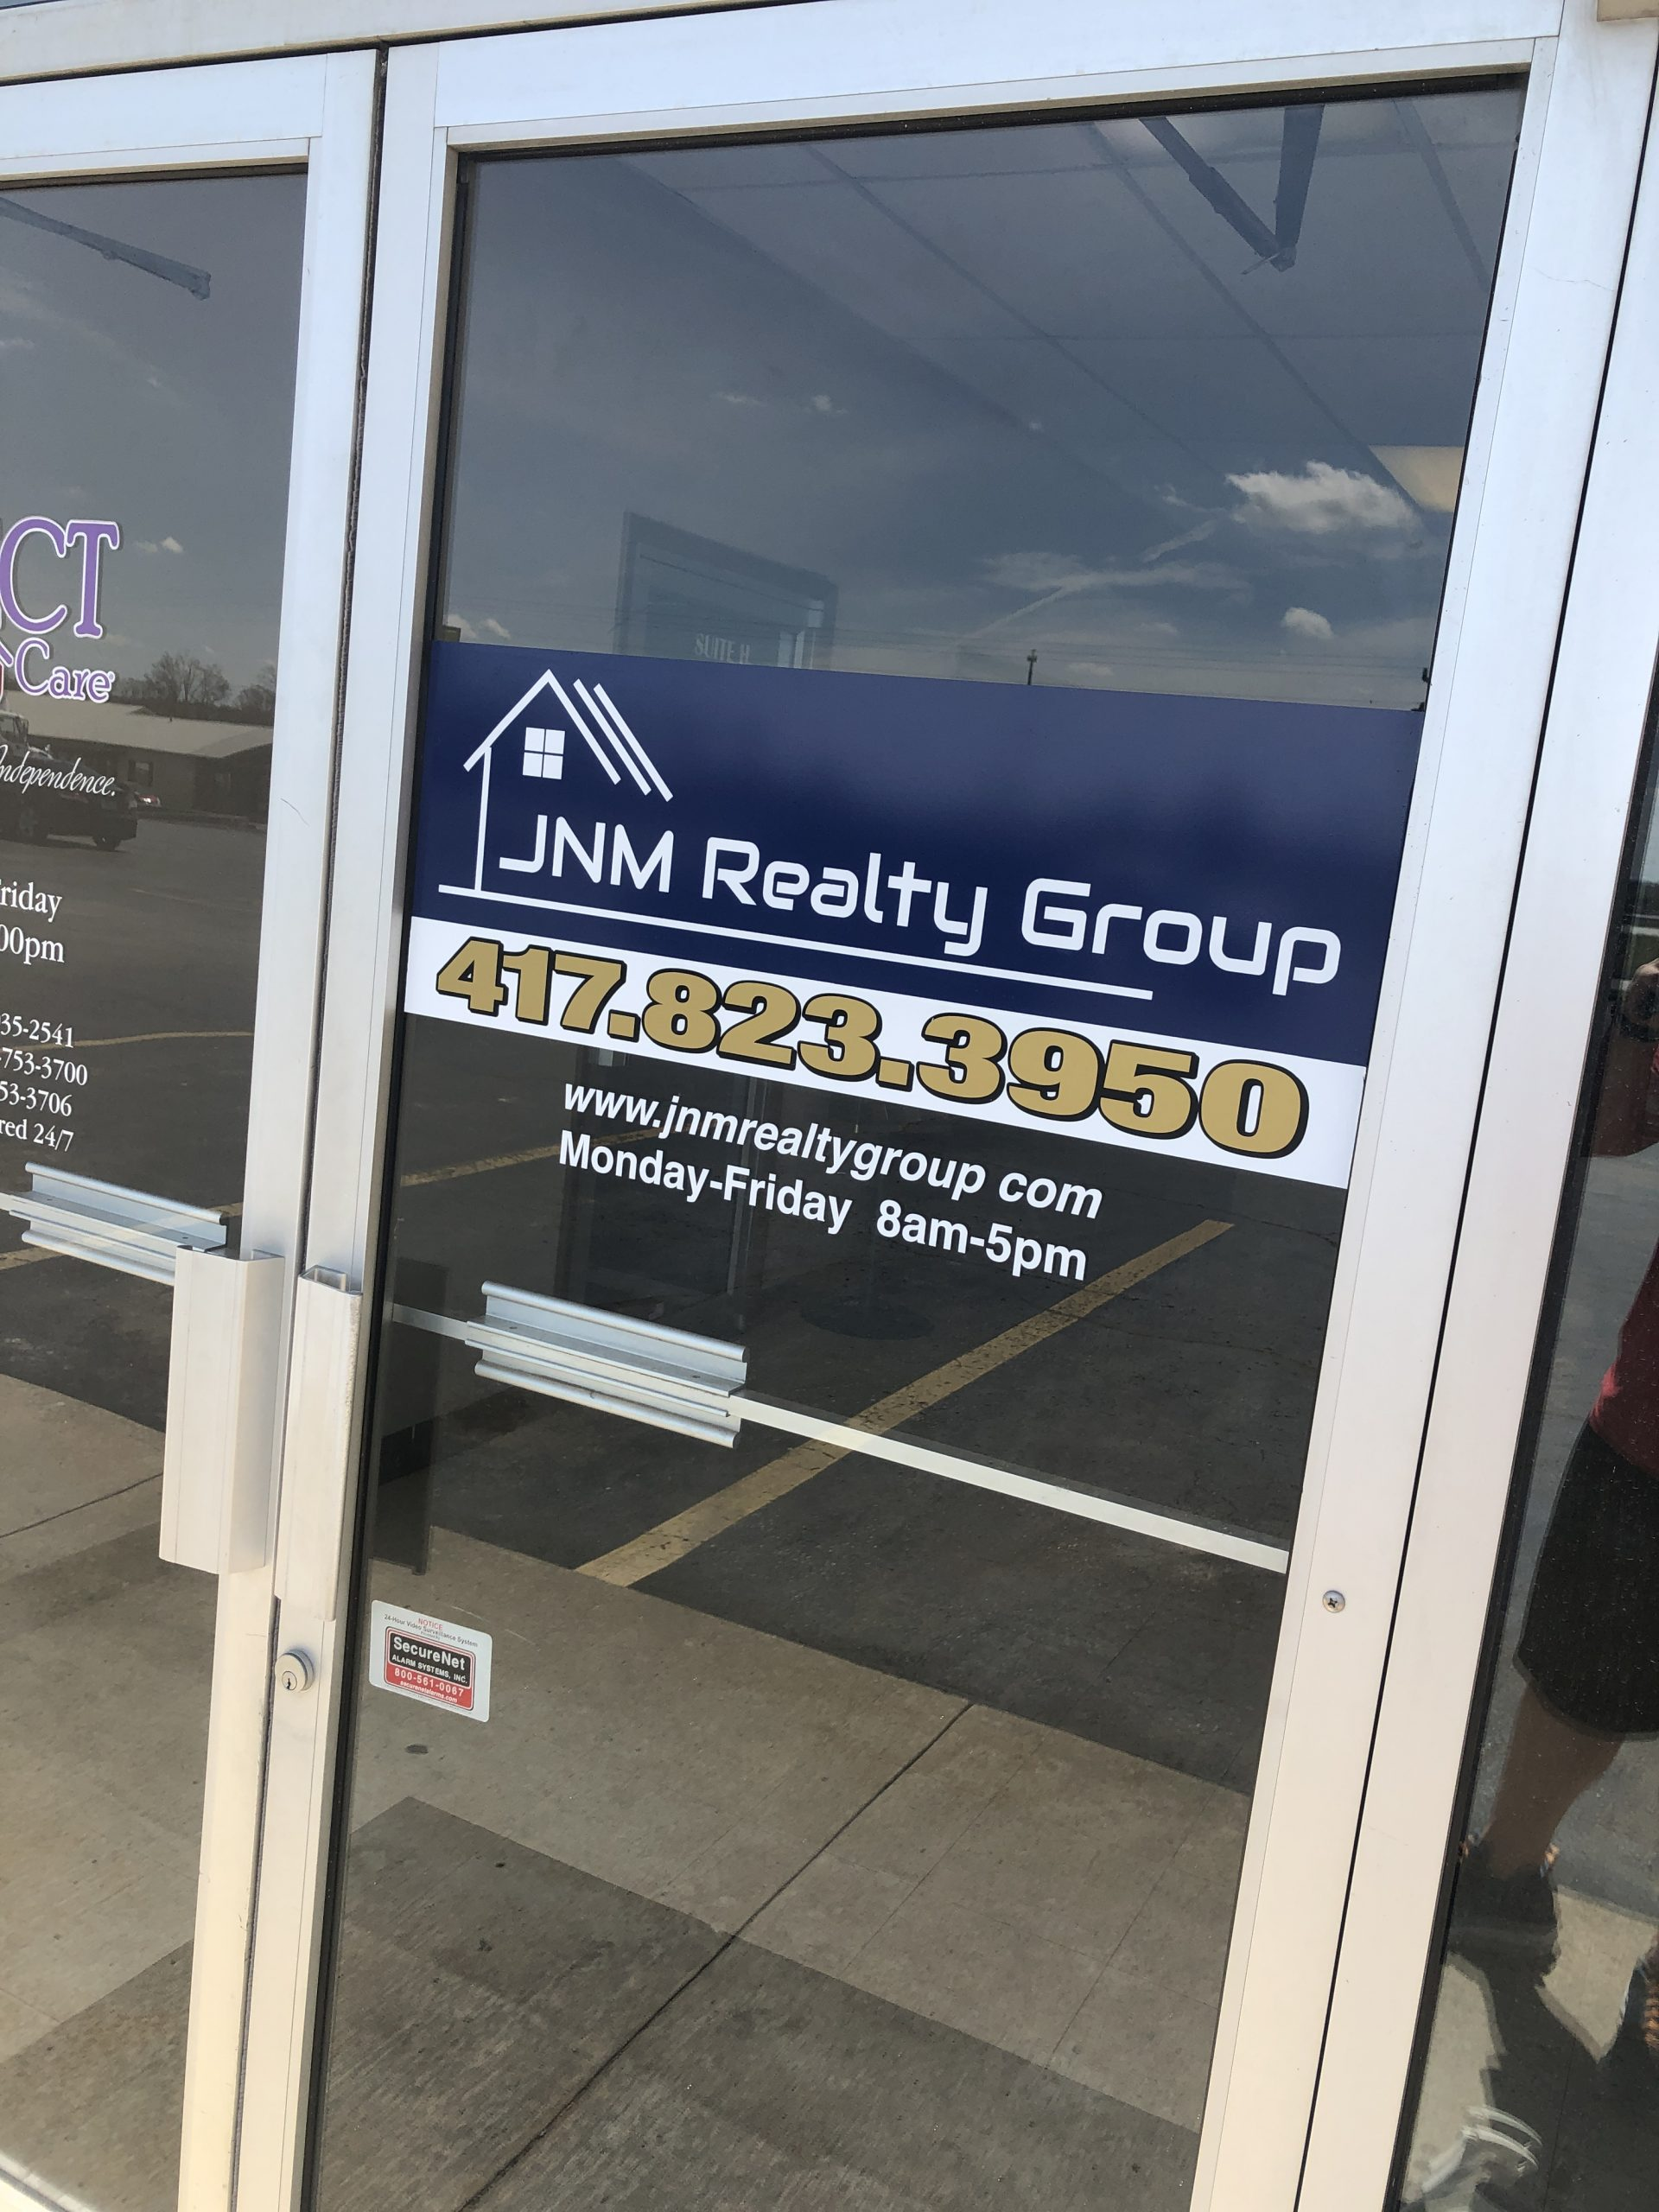 JNM Realty Group